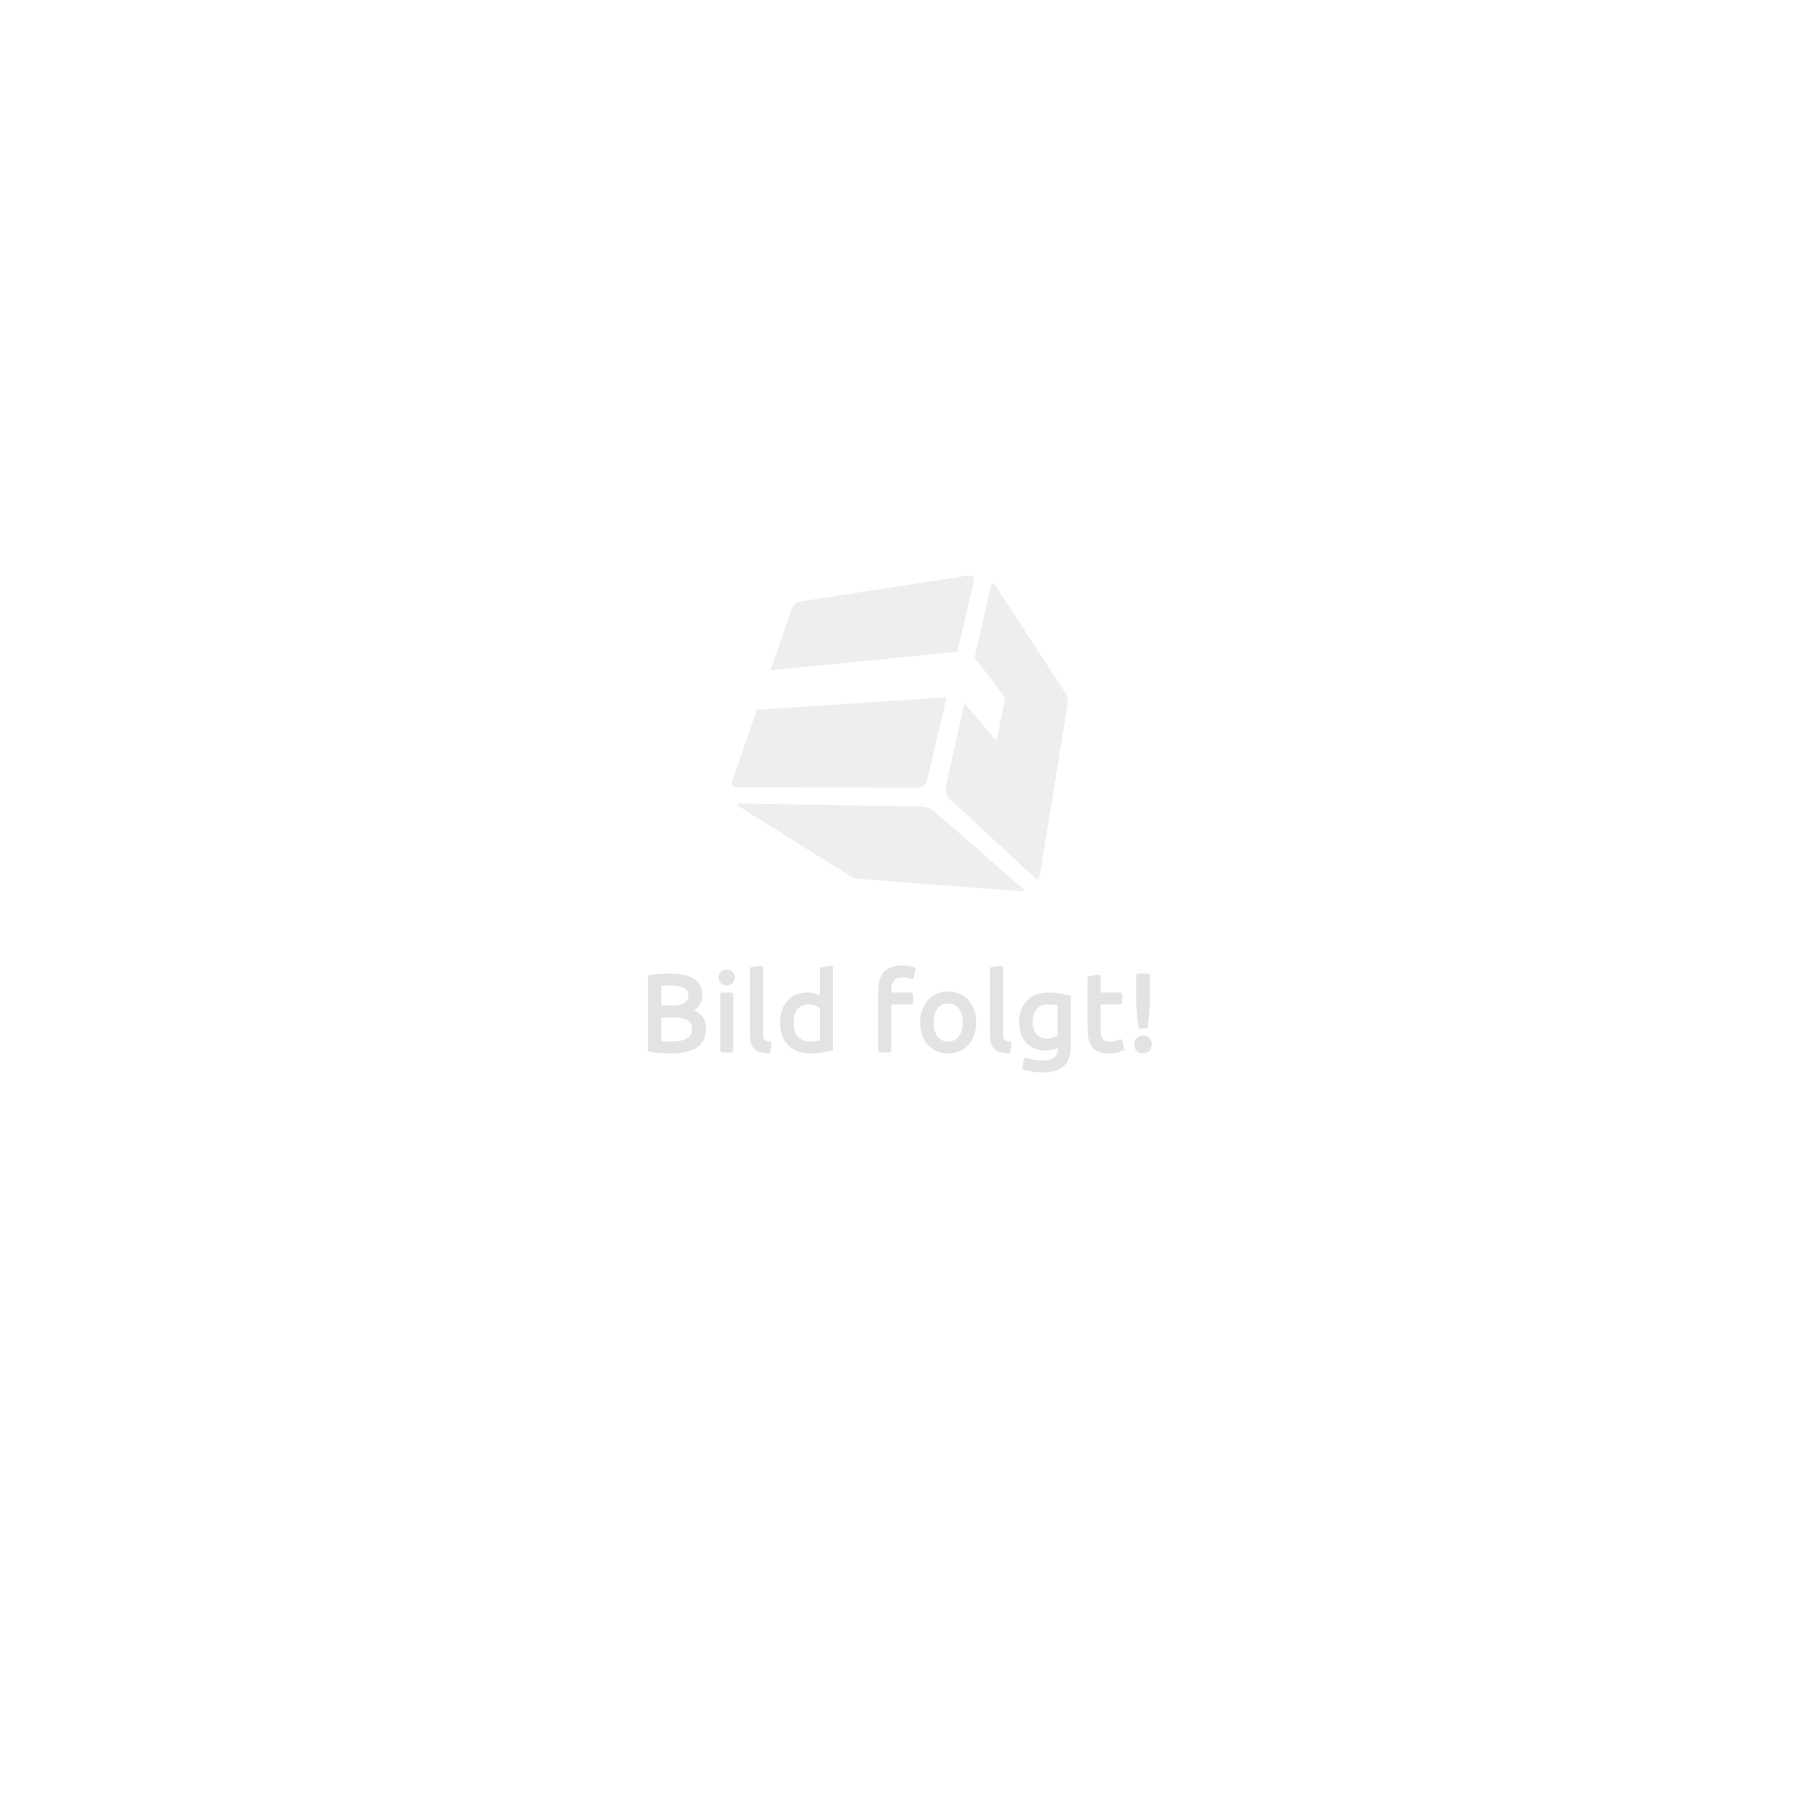 salon de jardin bar de jardin r sine tress e aluminium tectake. Black Bedroom Furniture Sets. Home Design Ideas